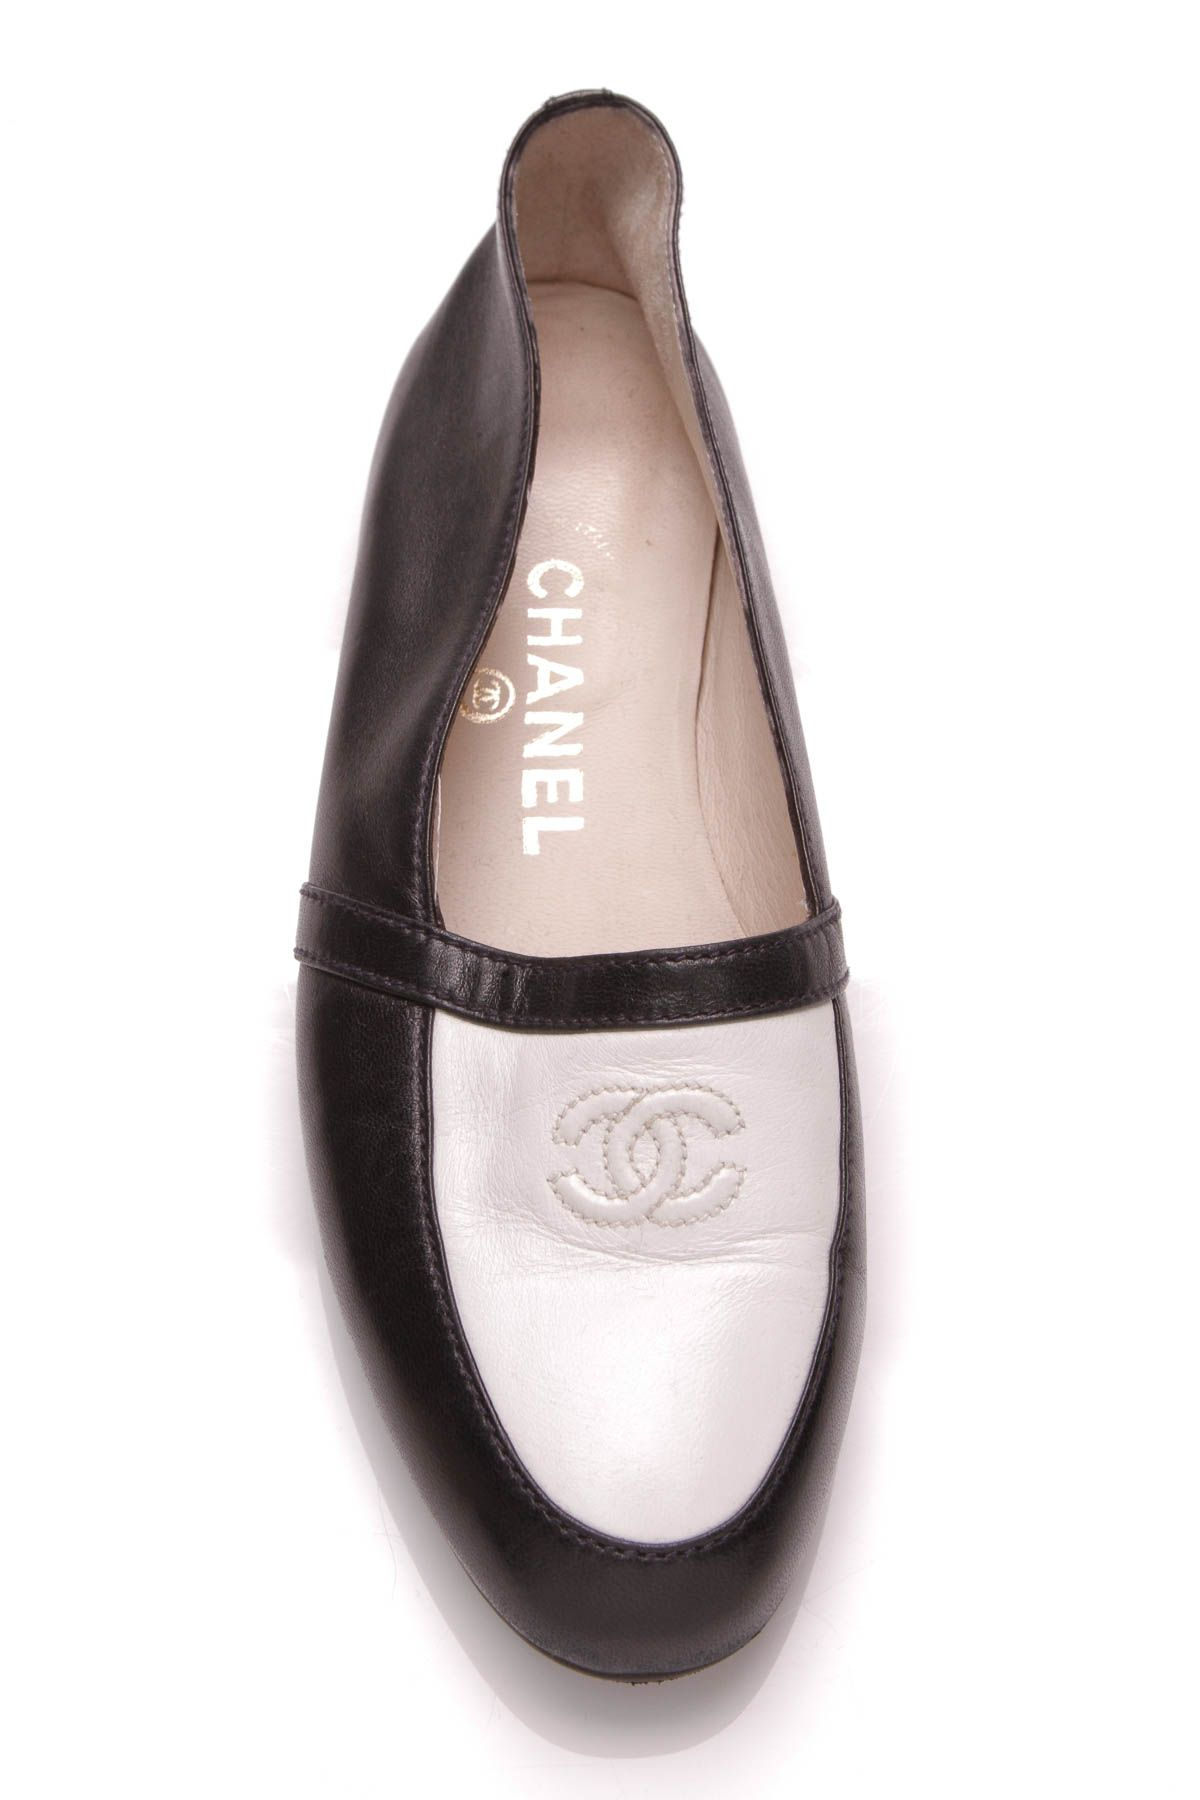 5fc99261dbc Chanel Two Tone Loafer Flats - Navy and White Lambskin